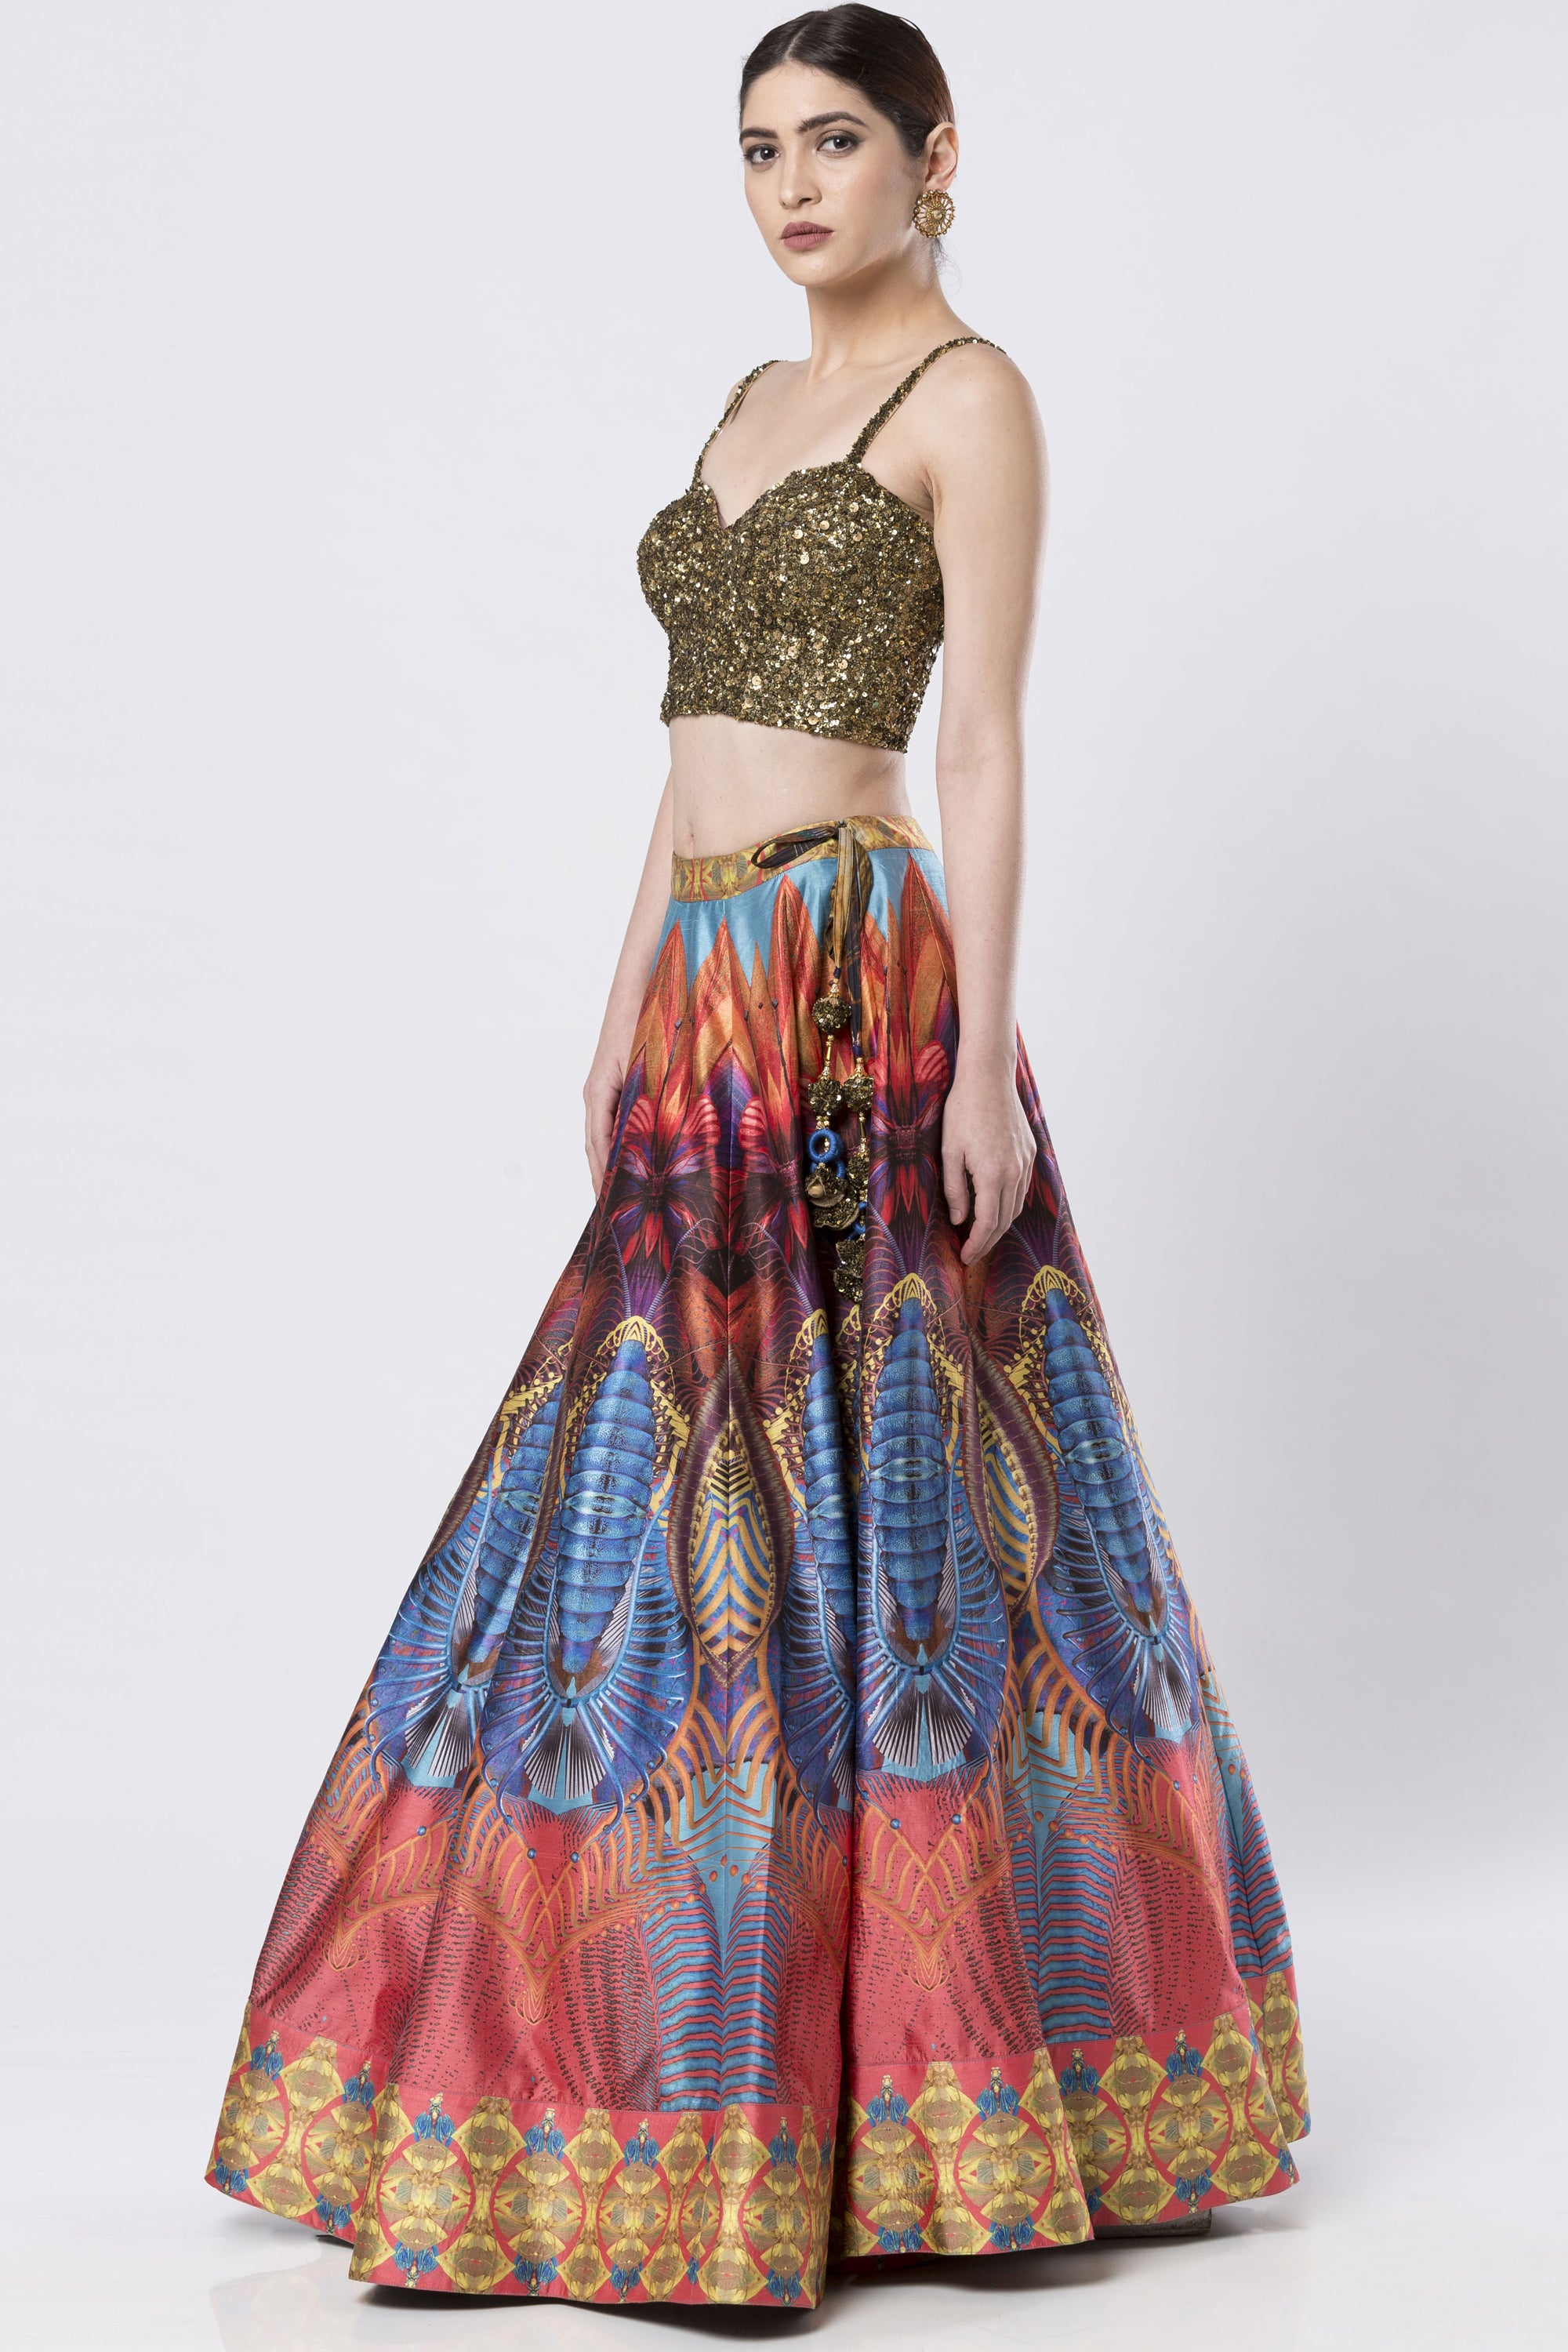 Hand Embroidered Multi-Coloured Raw Silk Skirt Set SIDE